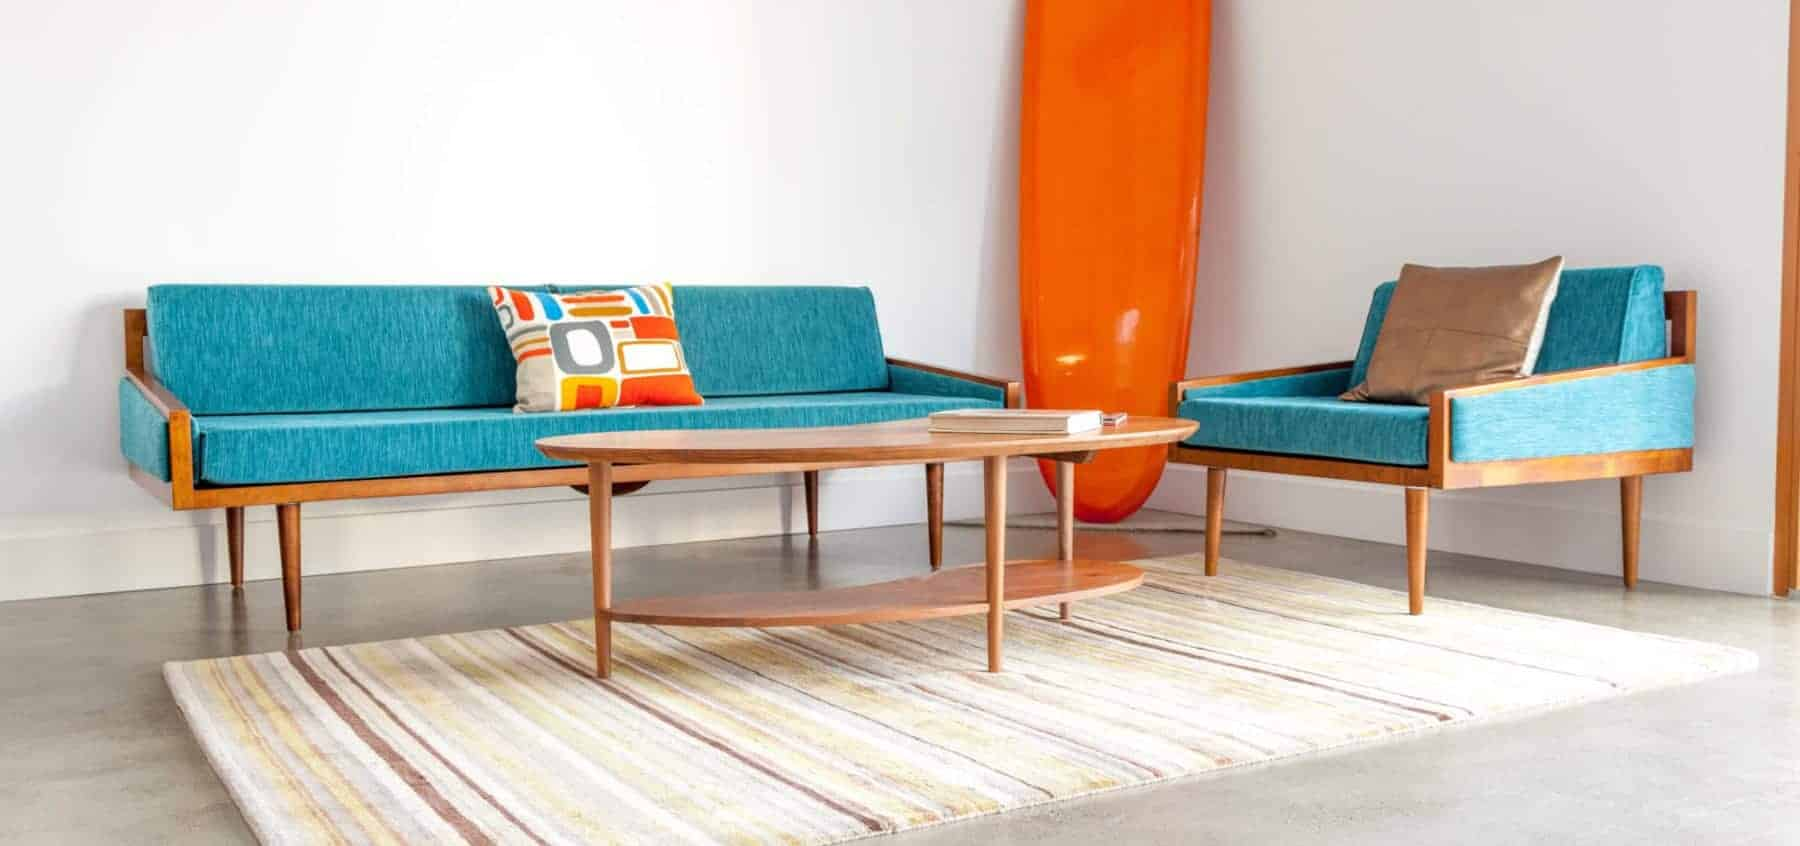 Laguna Beach Art Galleries - Mid Century Modern Furniture - California mid century modern